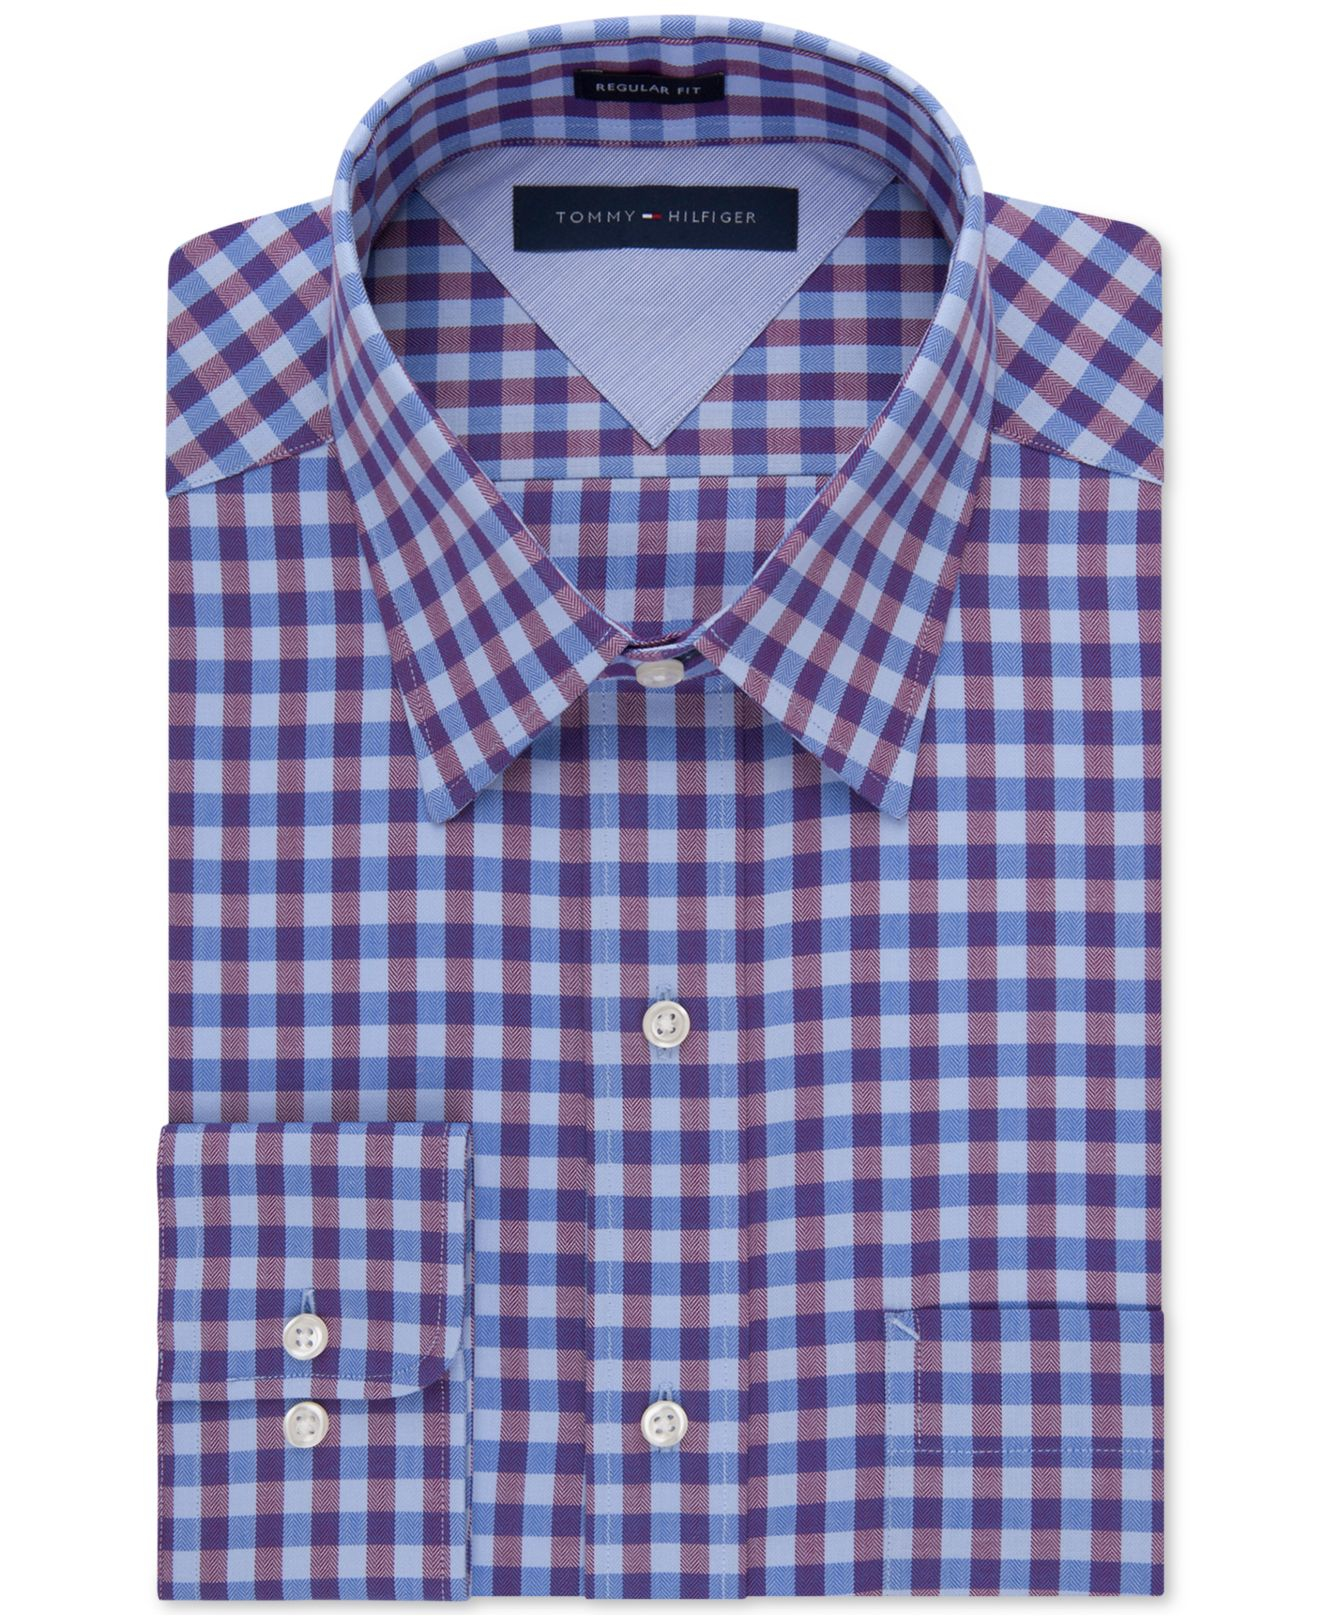 Lyst Tommy Hilfiger Easy Care Purple Gingham Dress Shirt